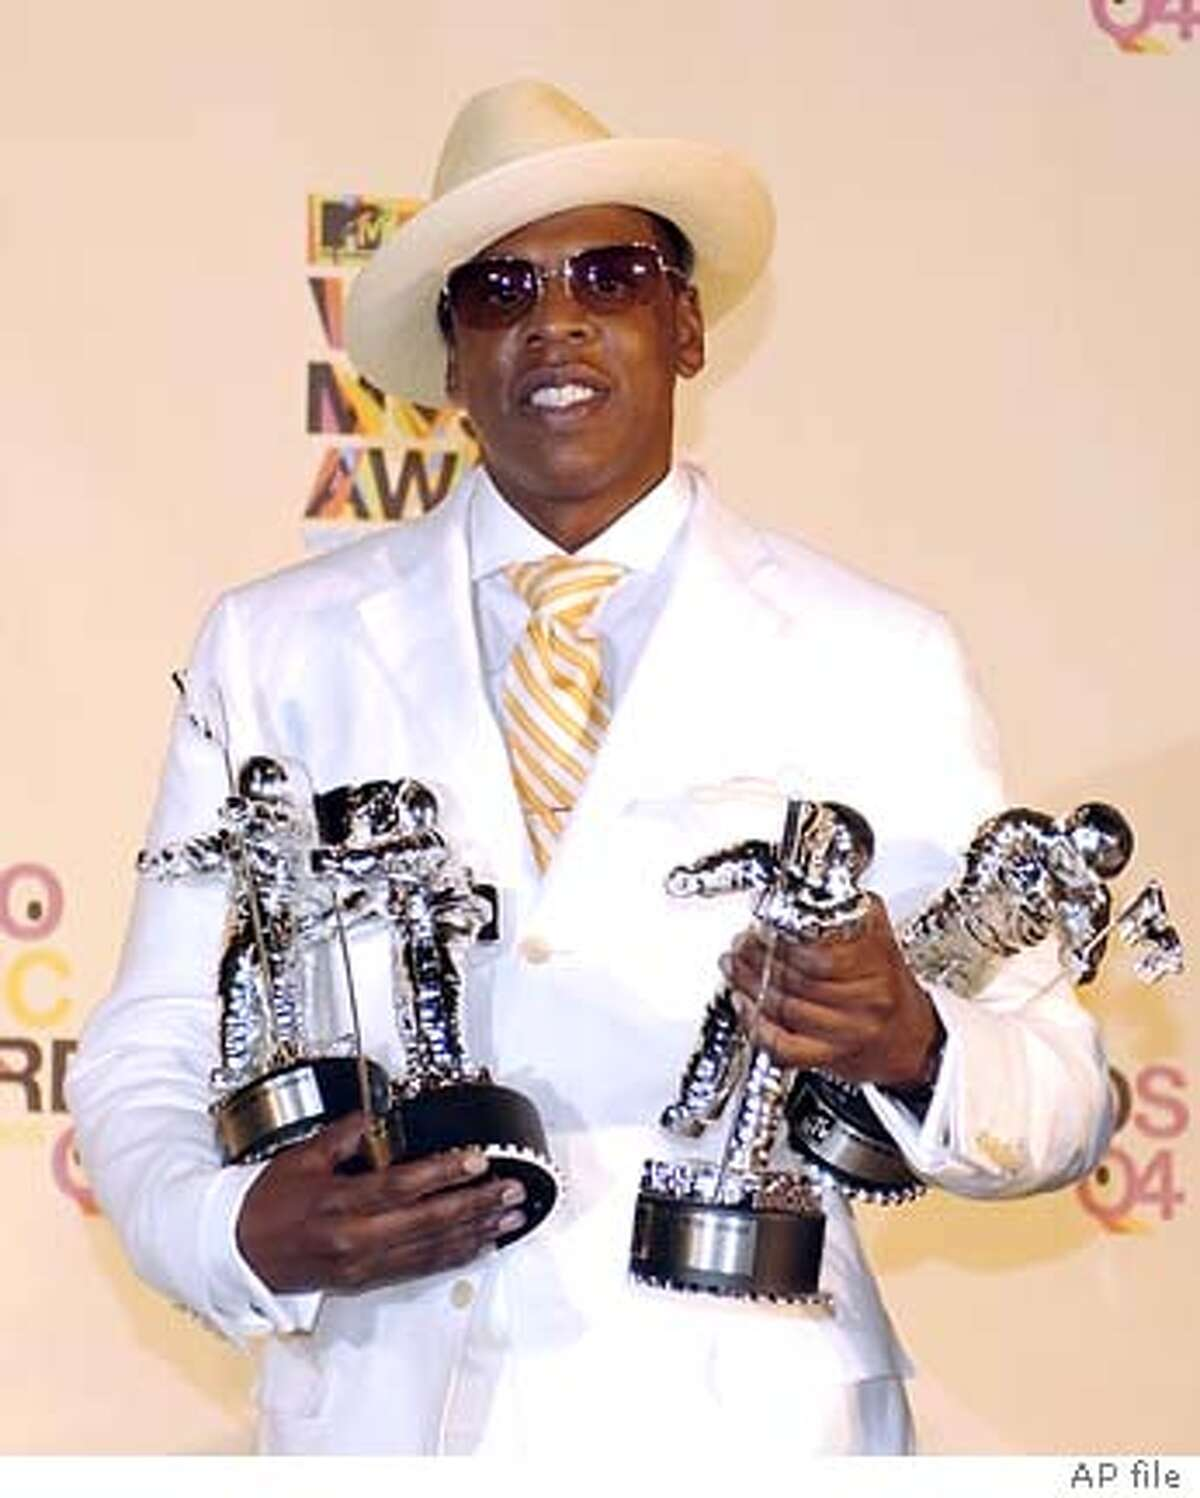 Jay-Z holds his four MTV Video Music awards in Miami, Aug. 29, 2004. Jay-Z won Best Rap Video, Best Direction in a Video, Best Editing and Best Cinematography.